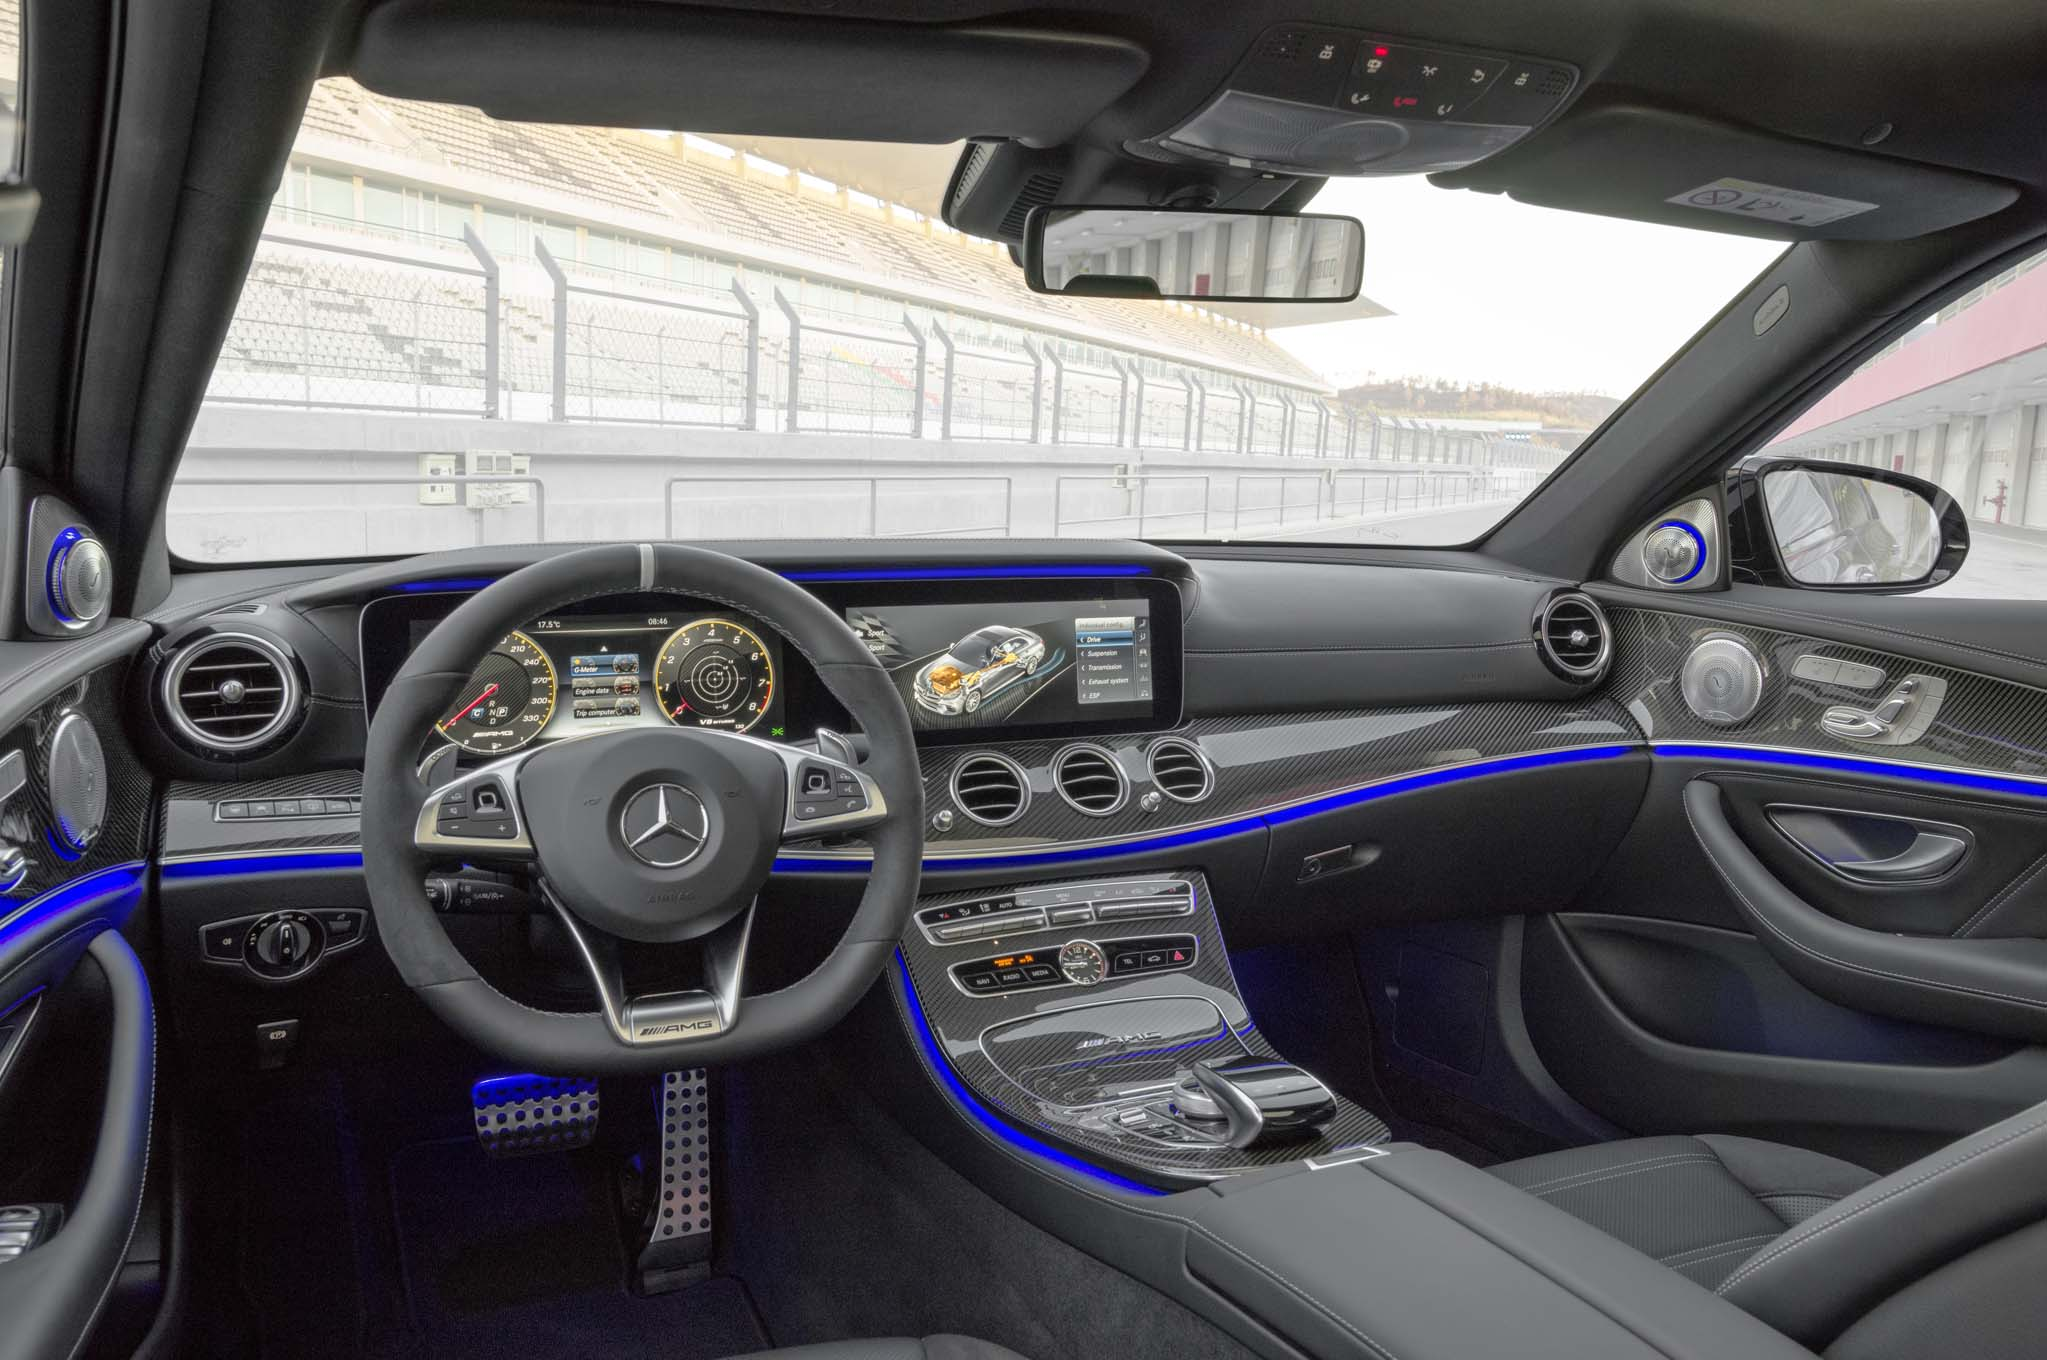 Take A Peek Inside The Mercedes Amg Gt4 S Cabin In These Spy Shots